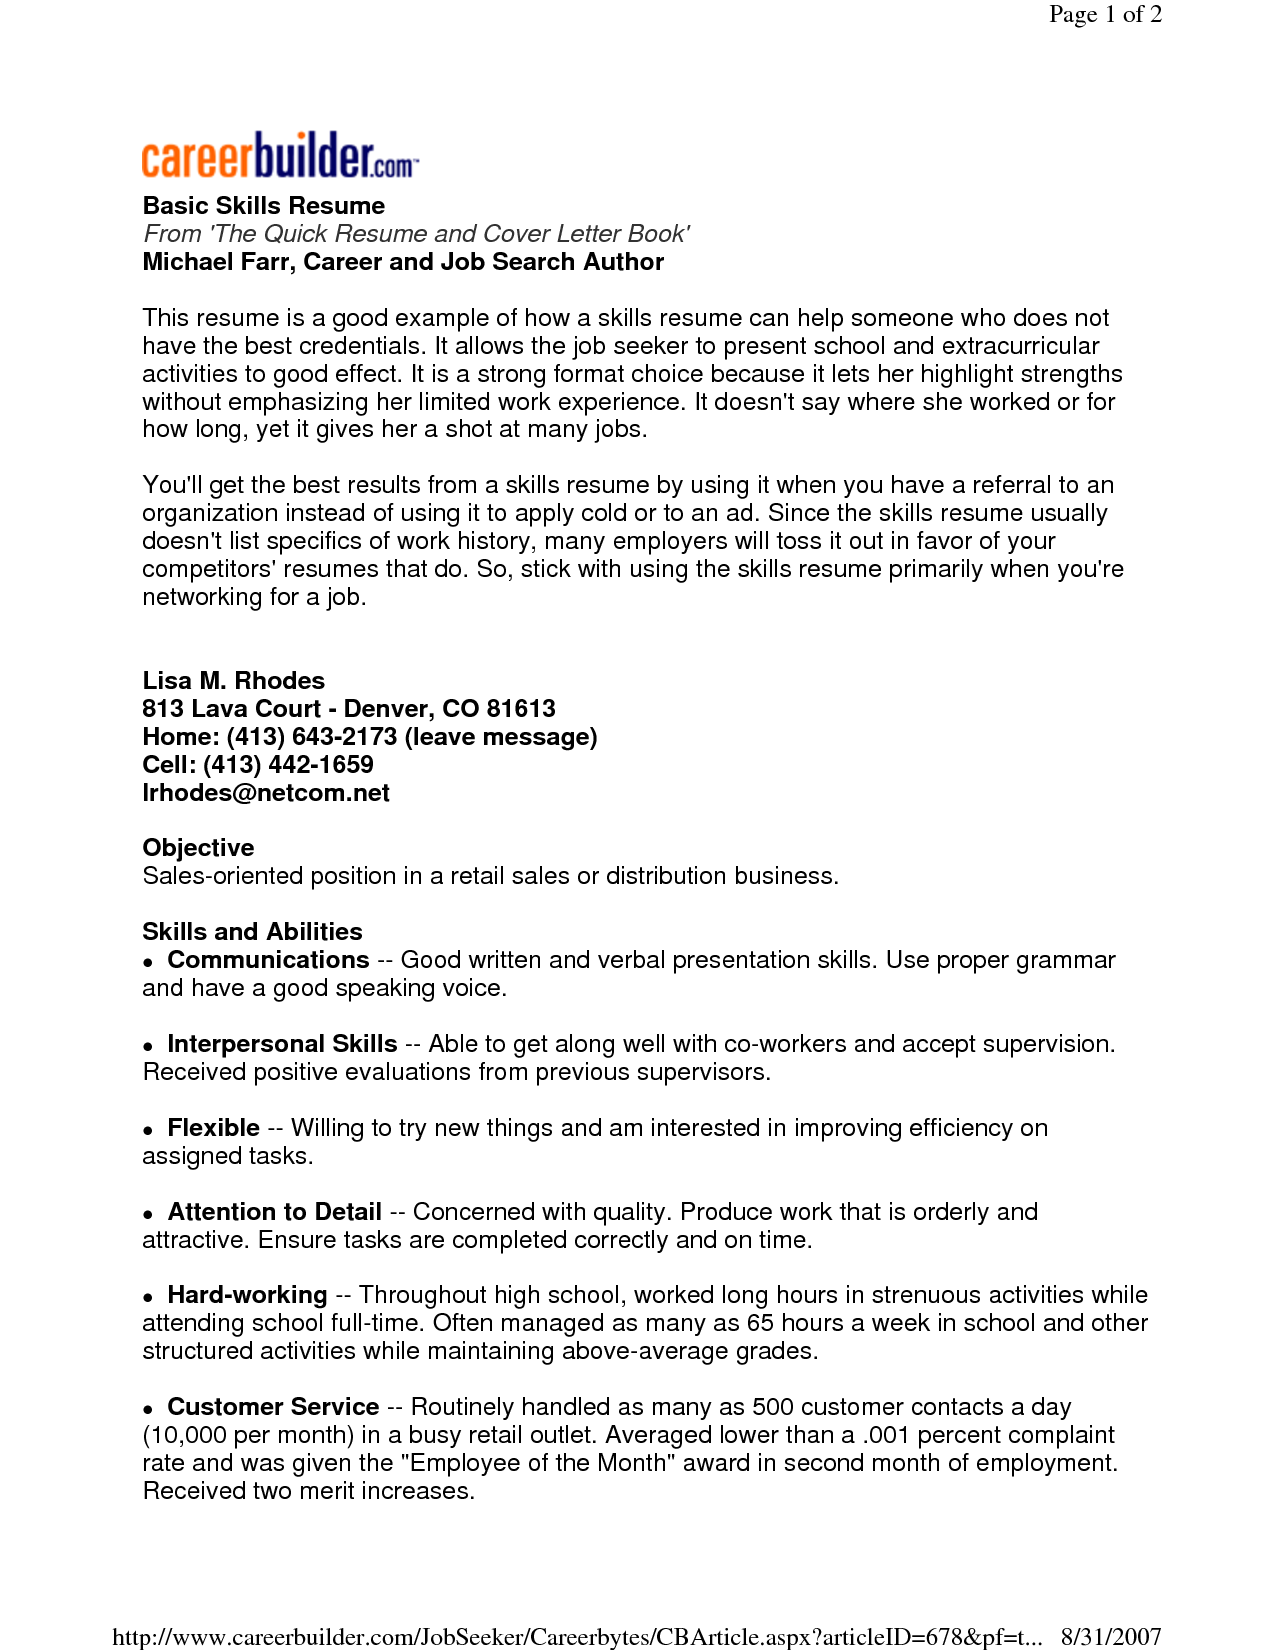 Find Here The Sample Resume That Best Fits Your Profile Order Get